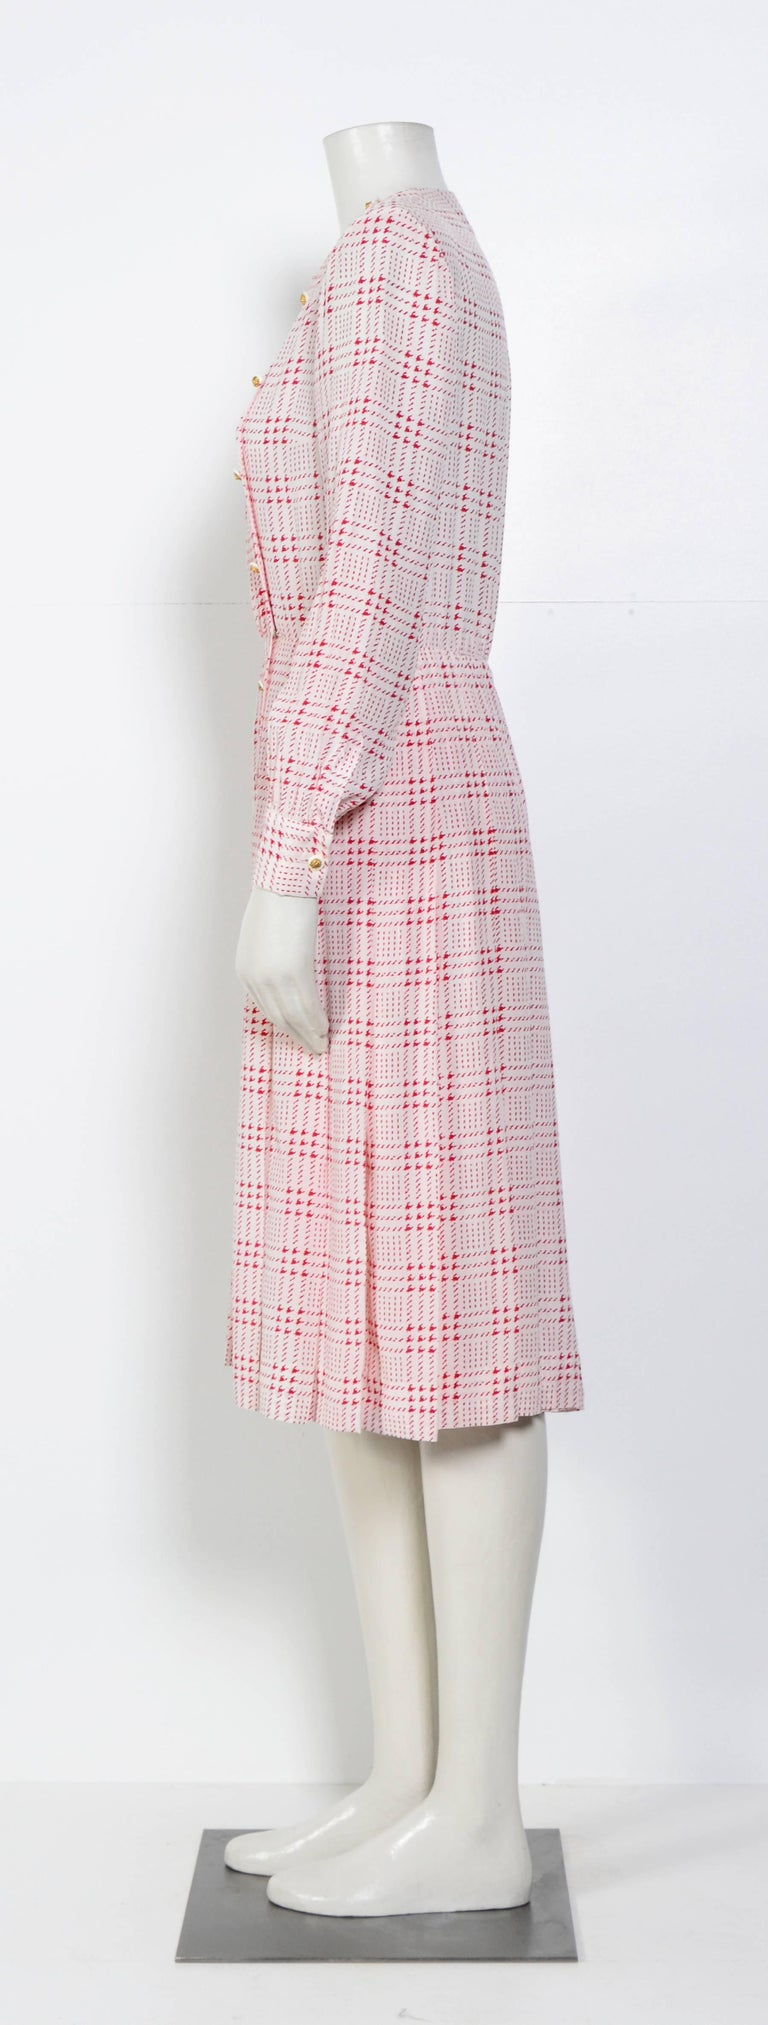 Chanel printed white & pink silk dress with matching scarf In Good Condition For Sale In Antwerp, BE